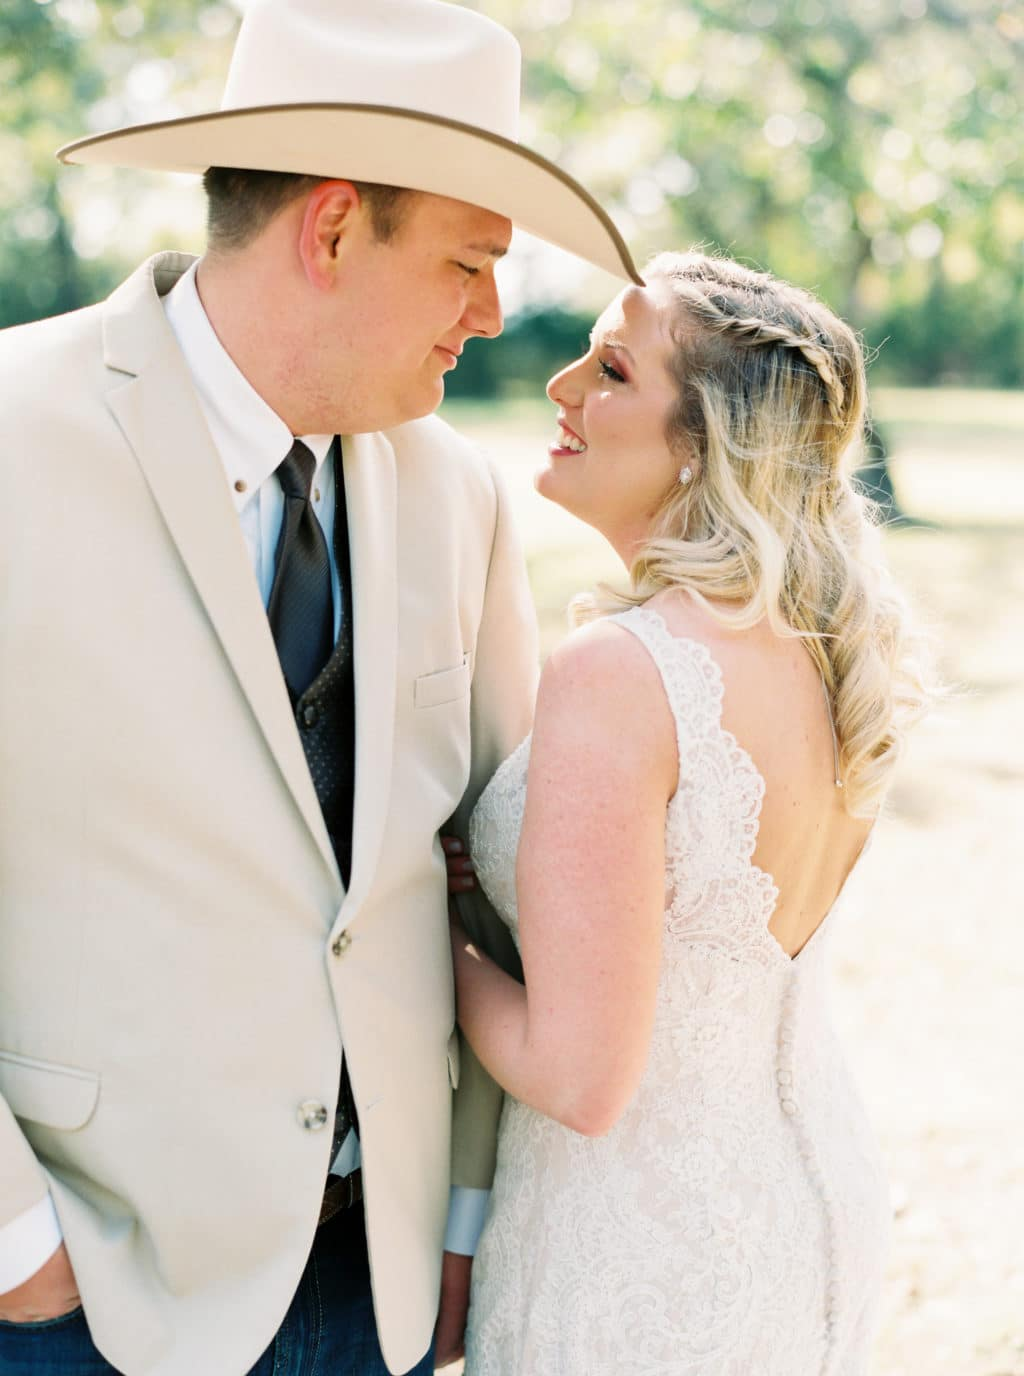 A bride and groom smile at each other as they take wedding portraits at a Georgetown, Texas wedding venue.